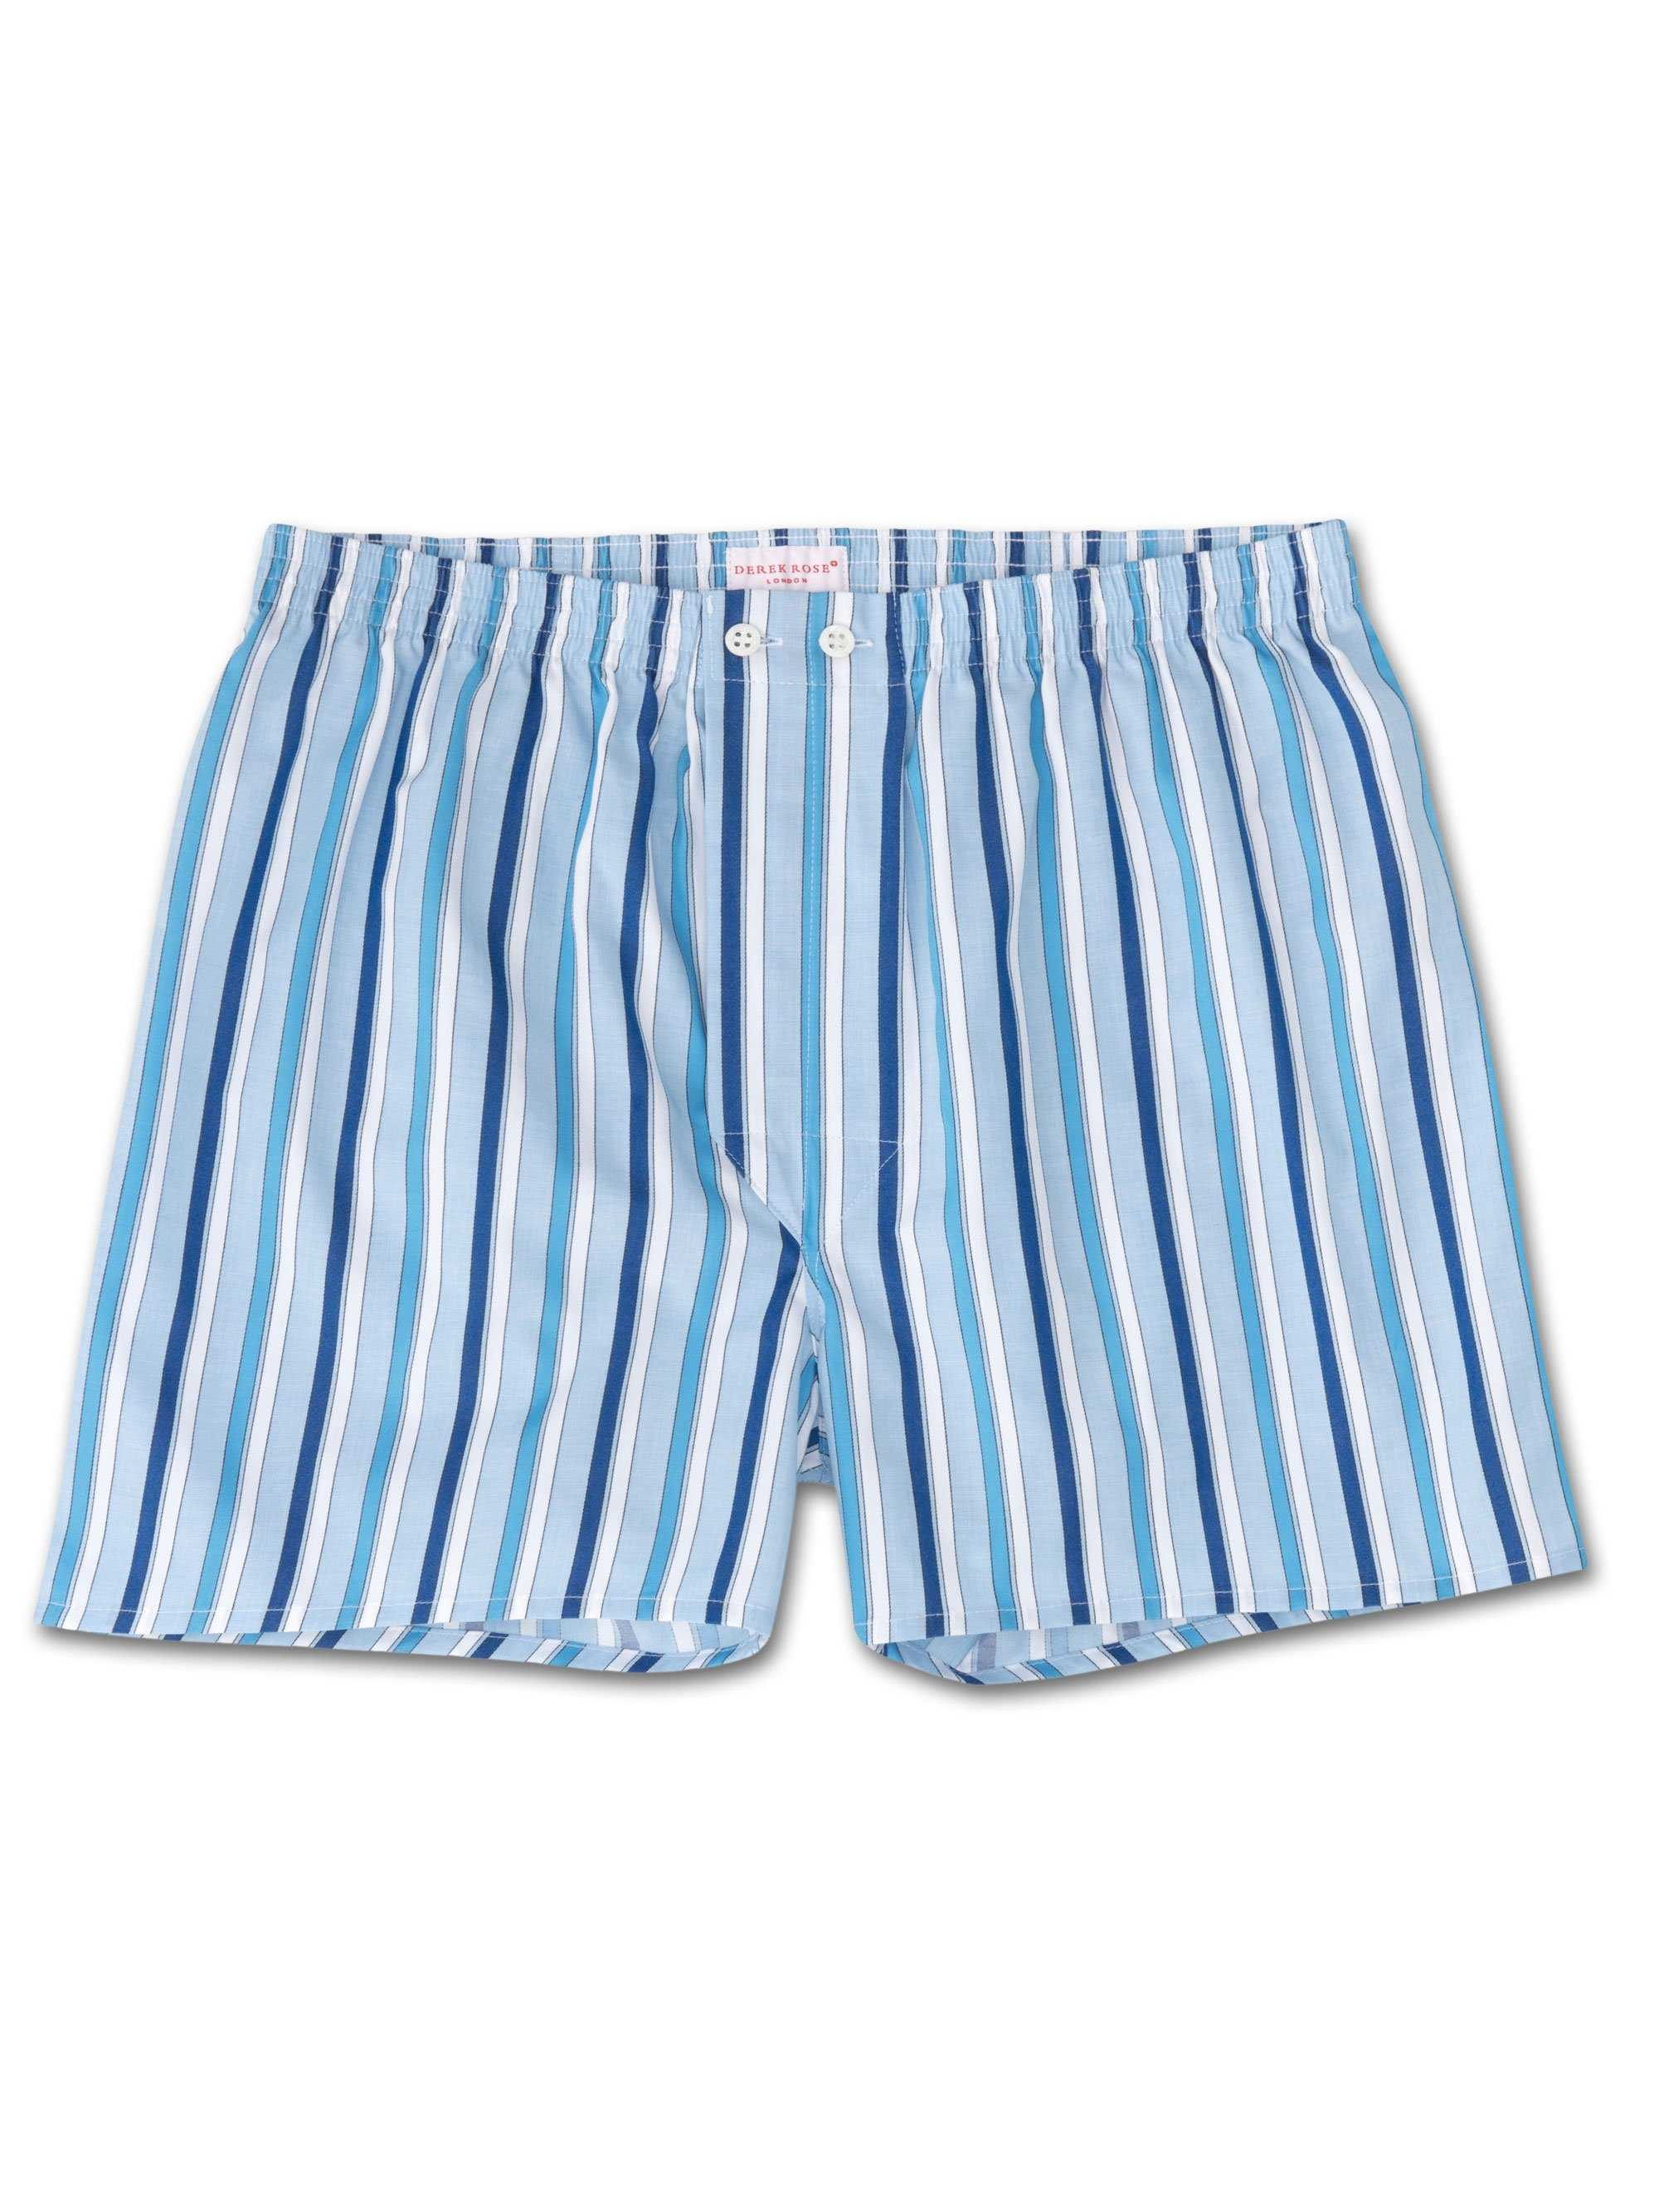 Men's Classic Fit Boxer Shorts Stowe 180 Cotton Satin Stripe Blue